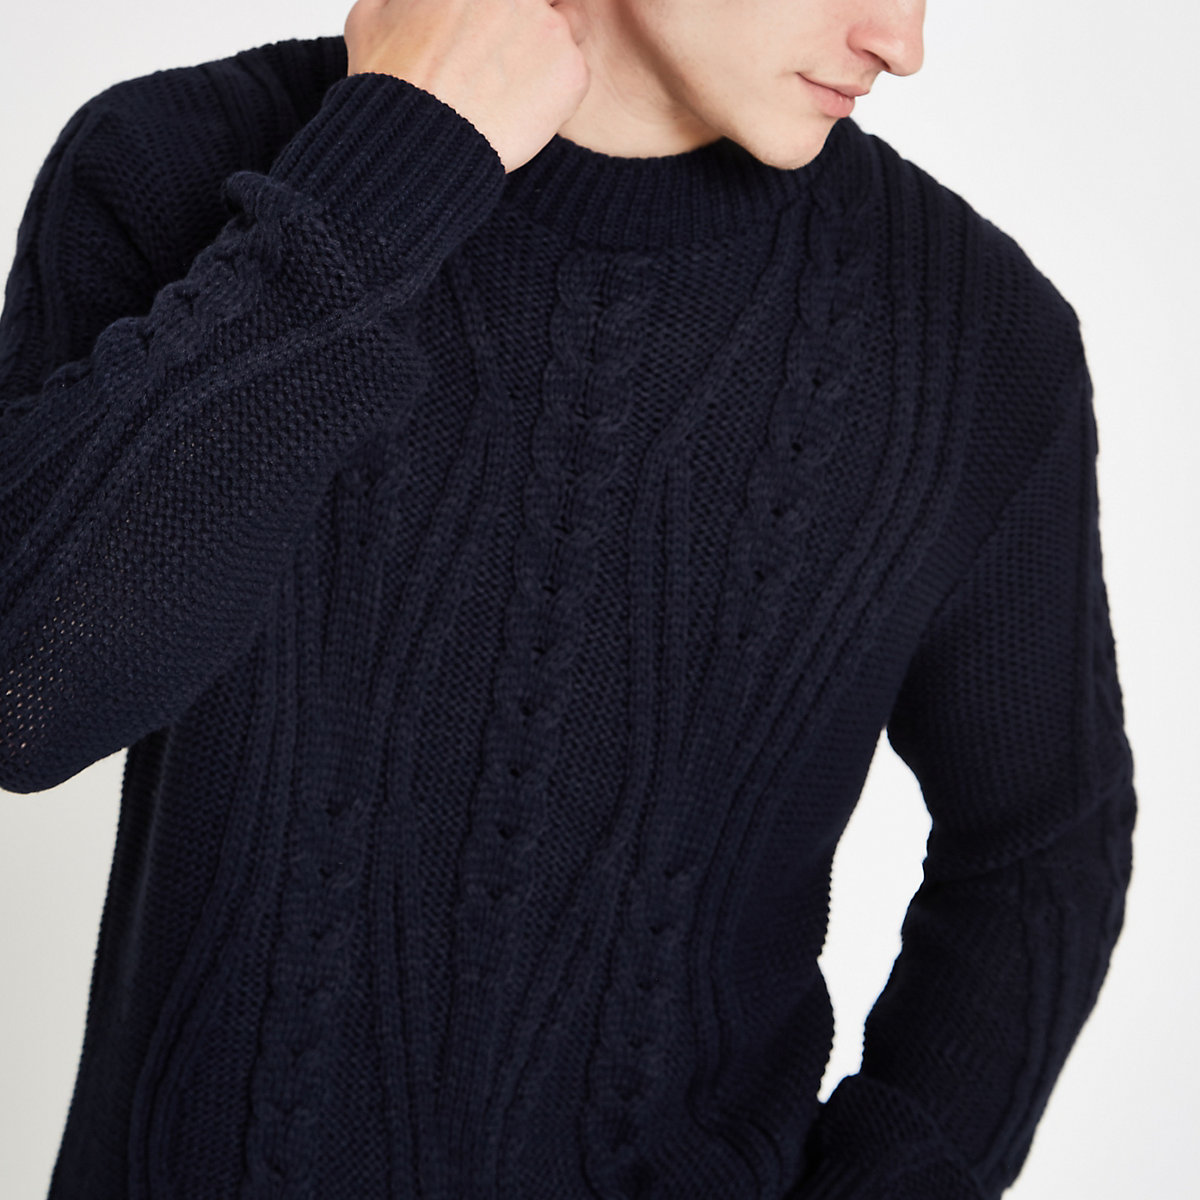 Navy cable knit crew neck sweater